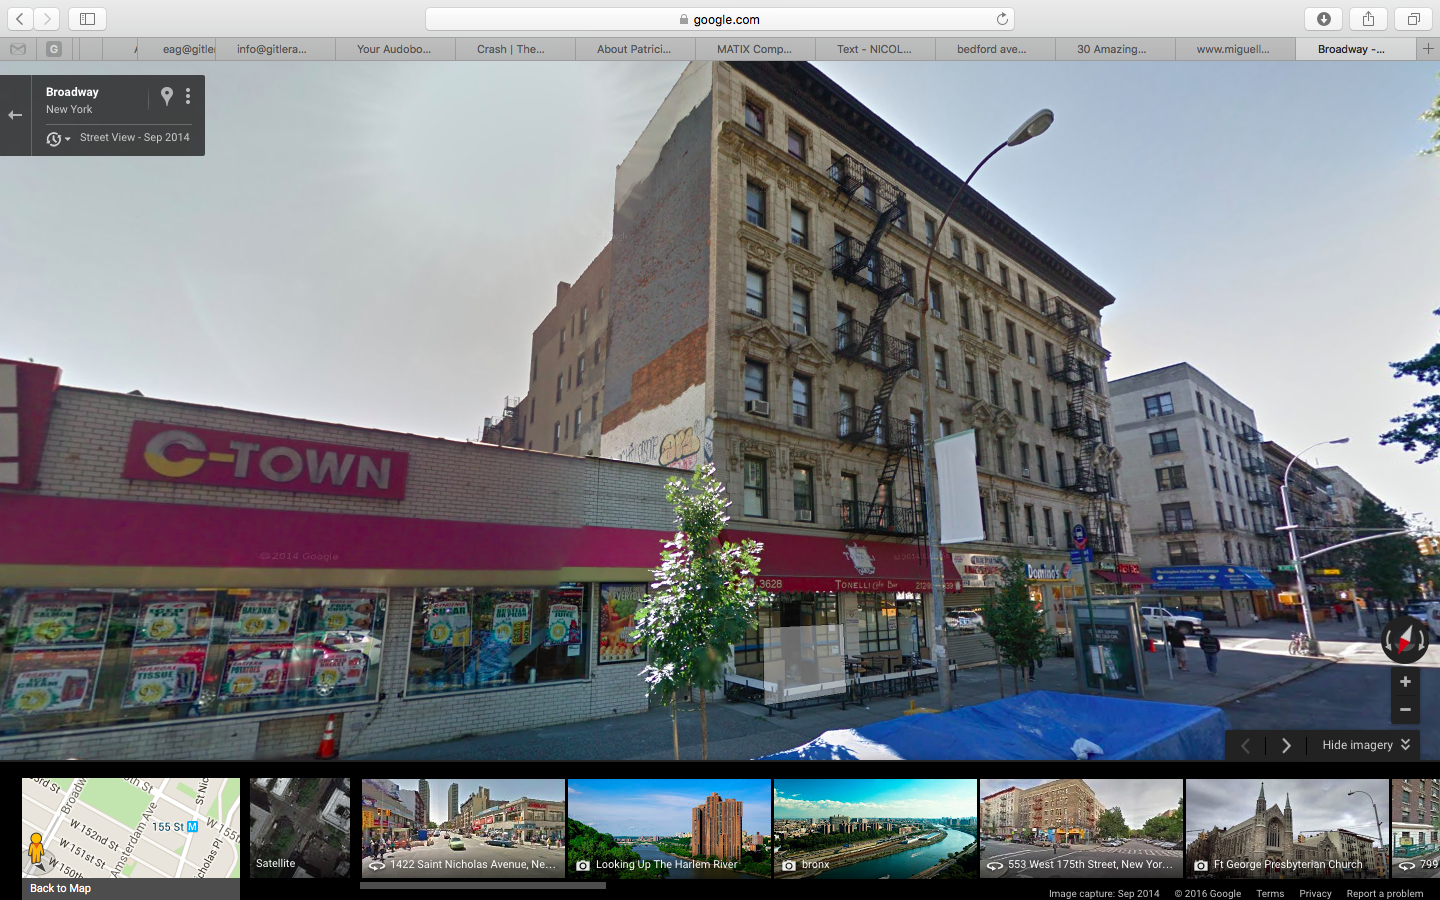 broadway - 149 and 150 3/4